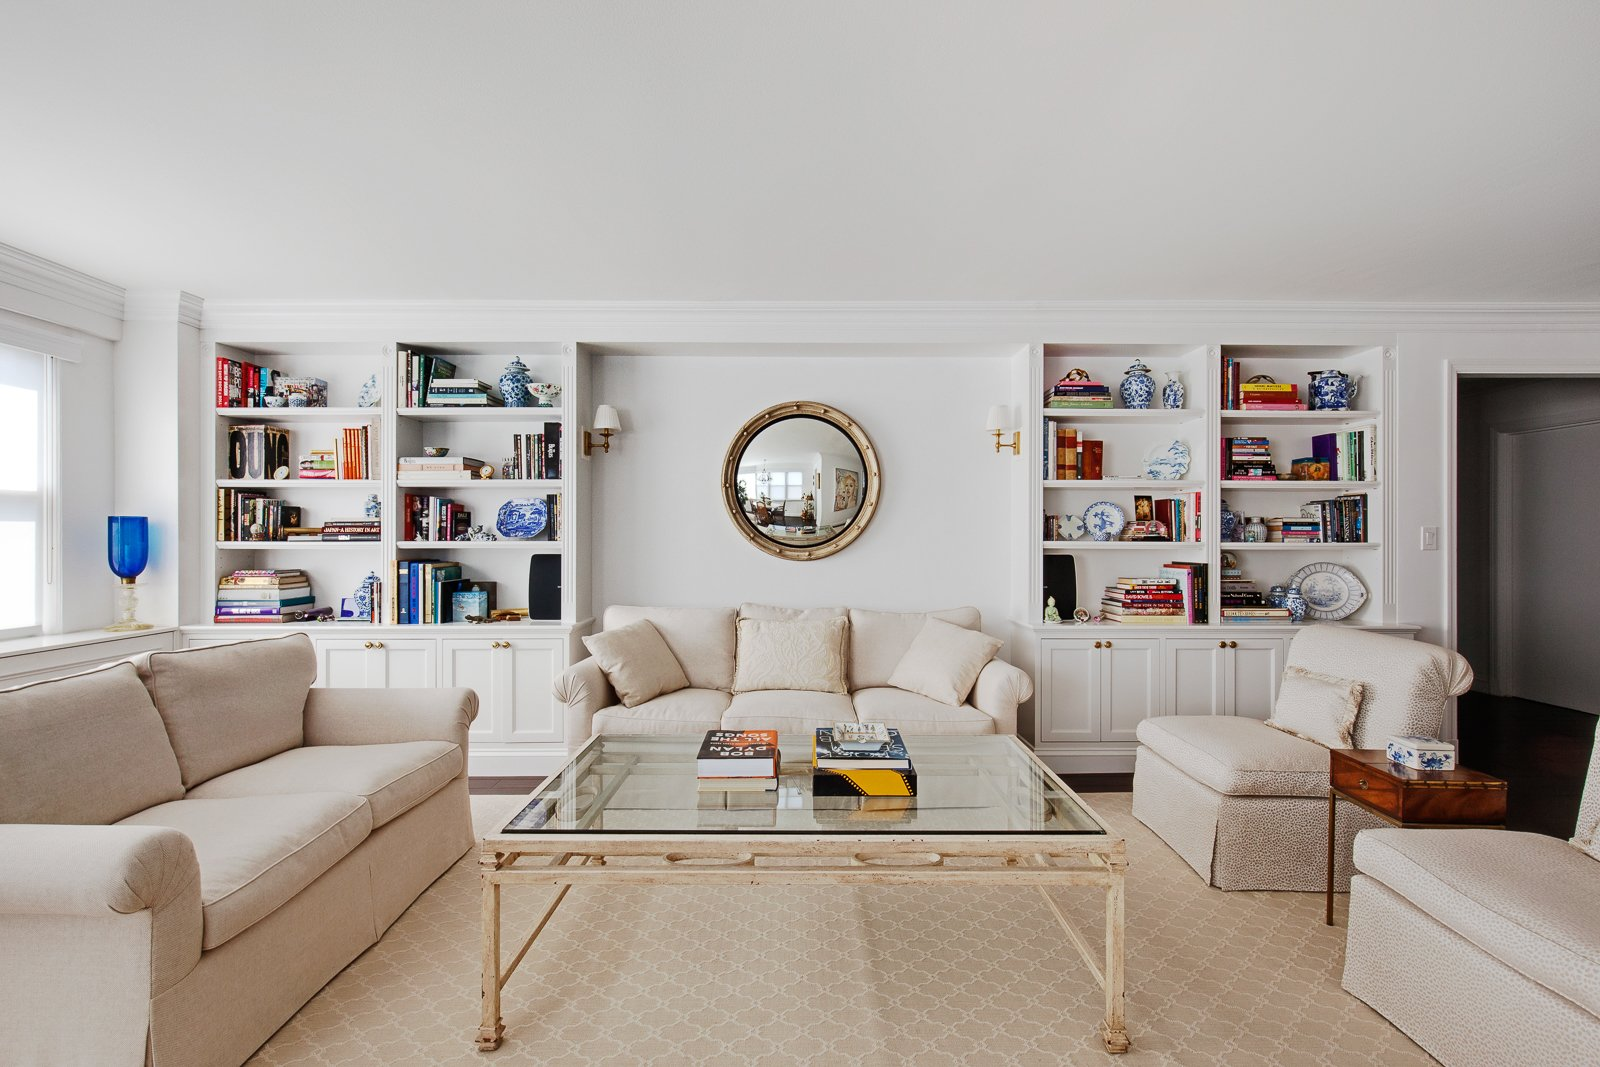 Living Room, Bookcase, Sofa, Coffee Tables, and Chair  AN ART-FILLED APARTMENT RENOVATION 40 YEARS IN THE MAKING! by Pixy Interiors